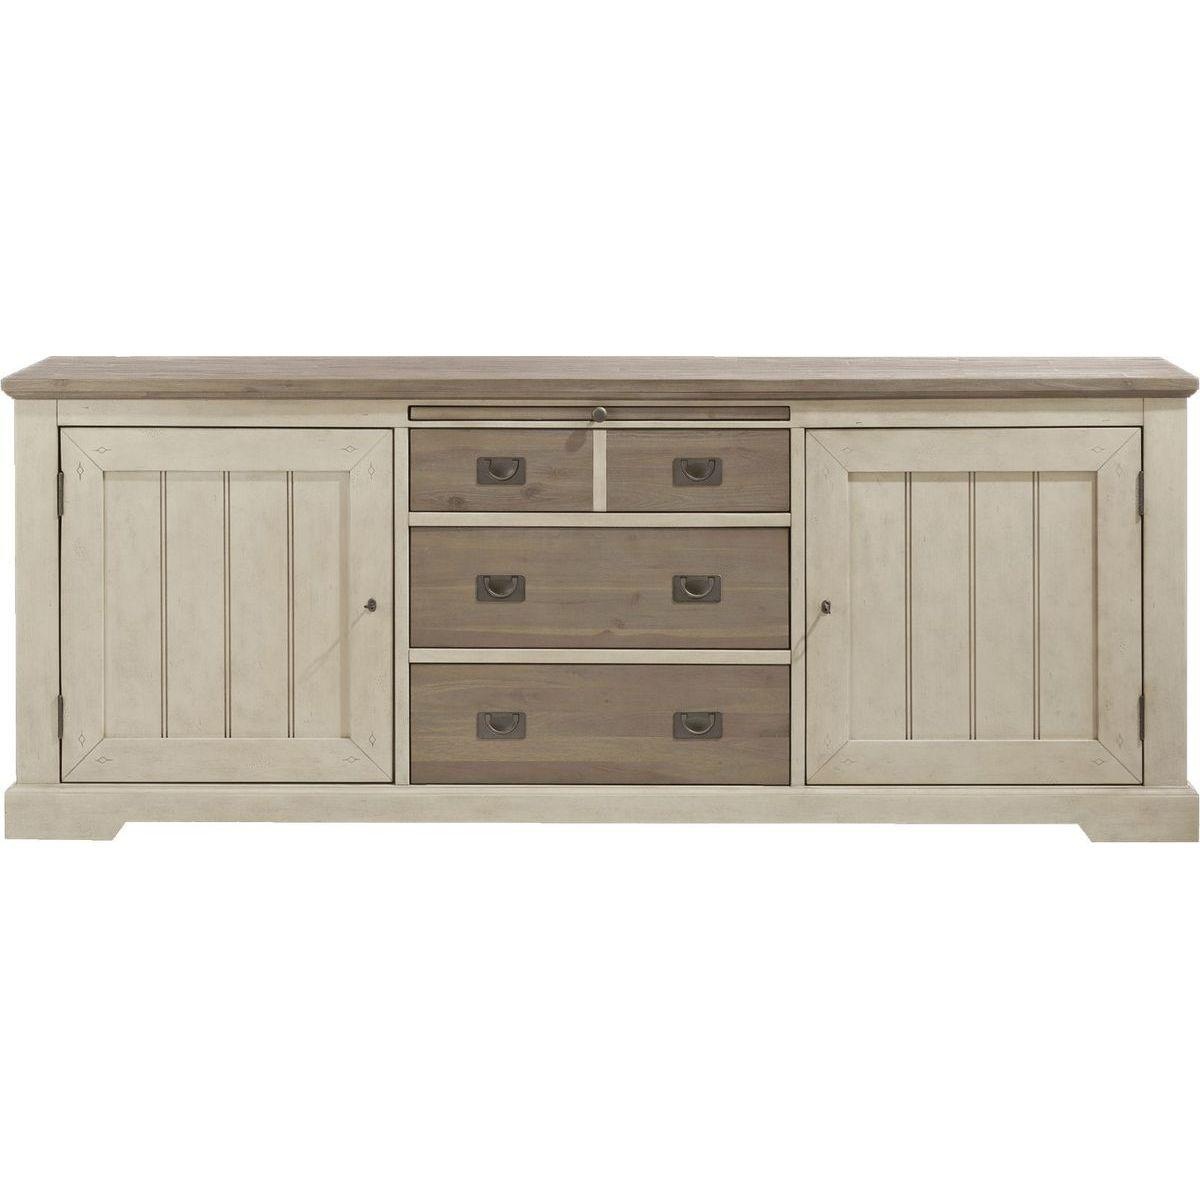 LE PORT by H&H Dressoir 220cm French White